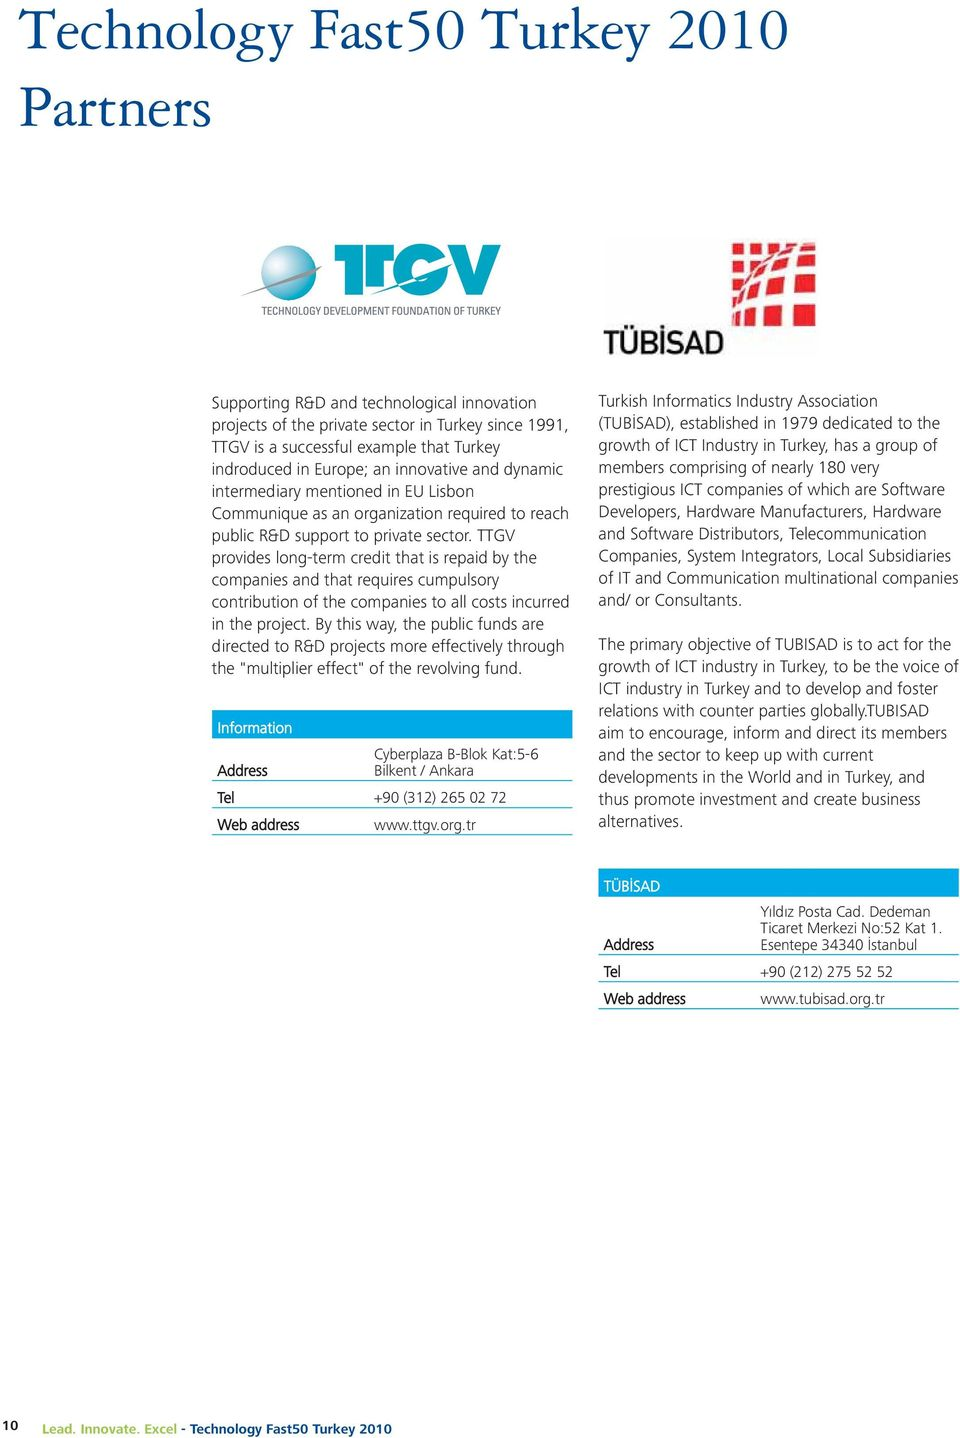 TTGV provides long-term credit that is repaid by the companies and that requires cumpulsory contribution of the companies to all costs incurred in the project.